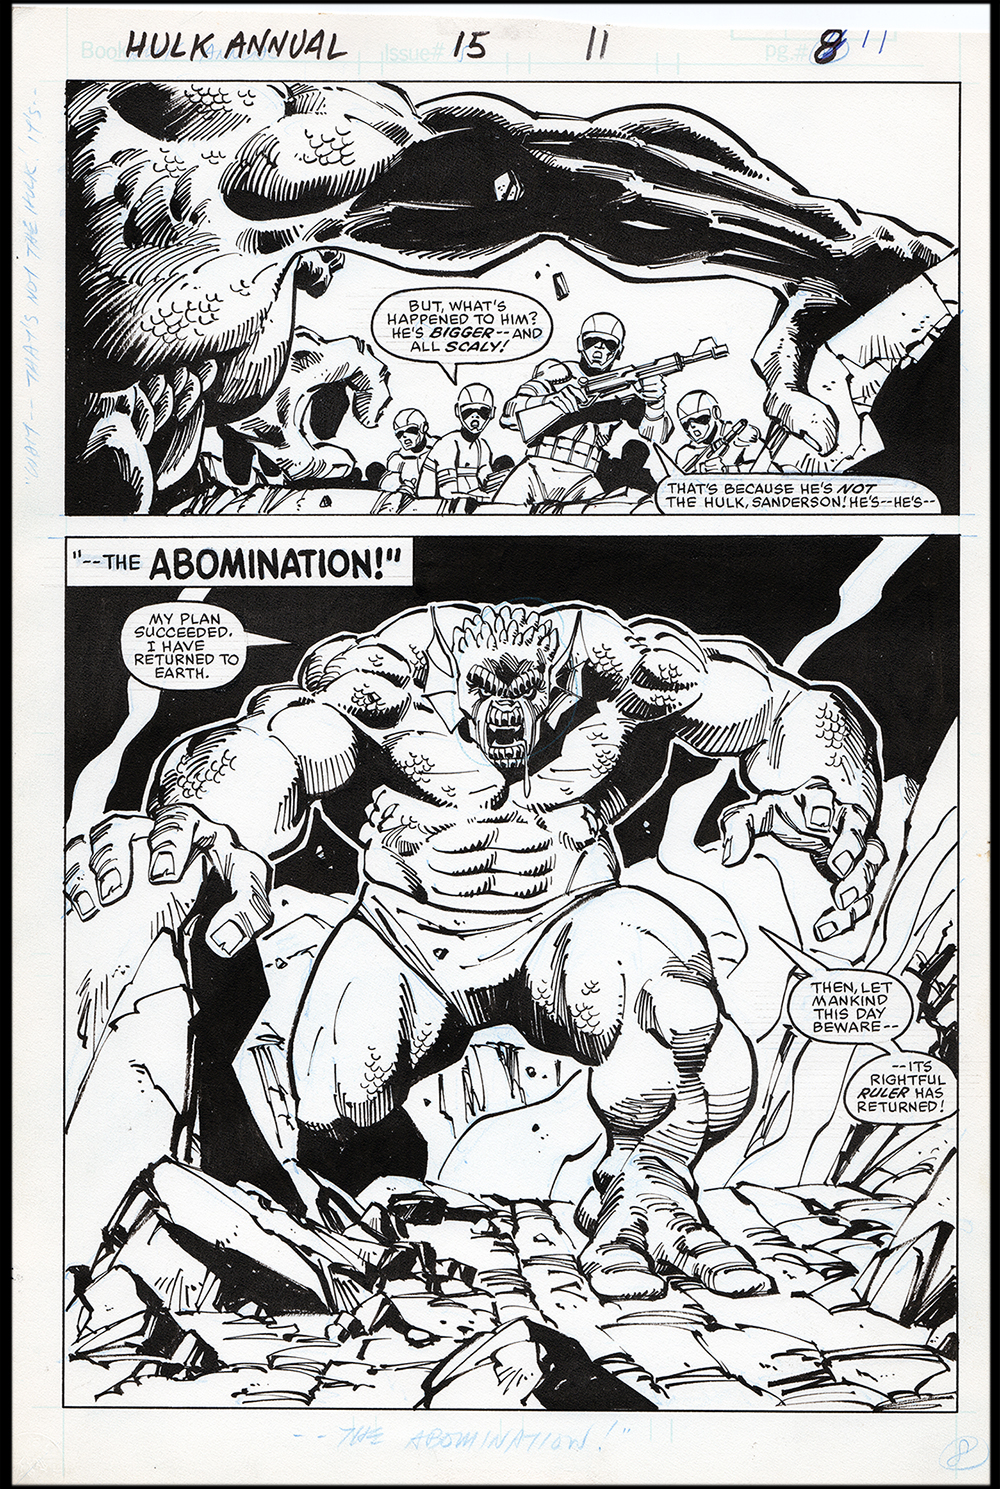 Image: Incredible Hulk Annual #15 Splash Art by Sal Buscema